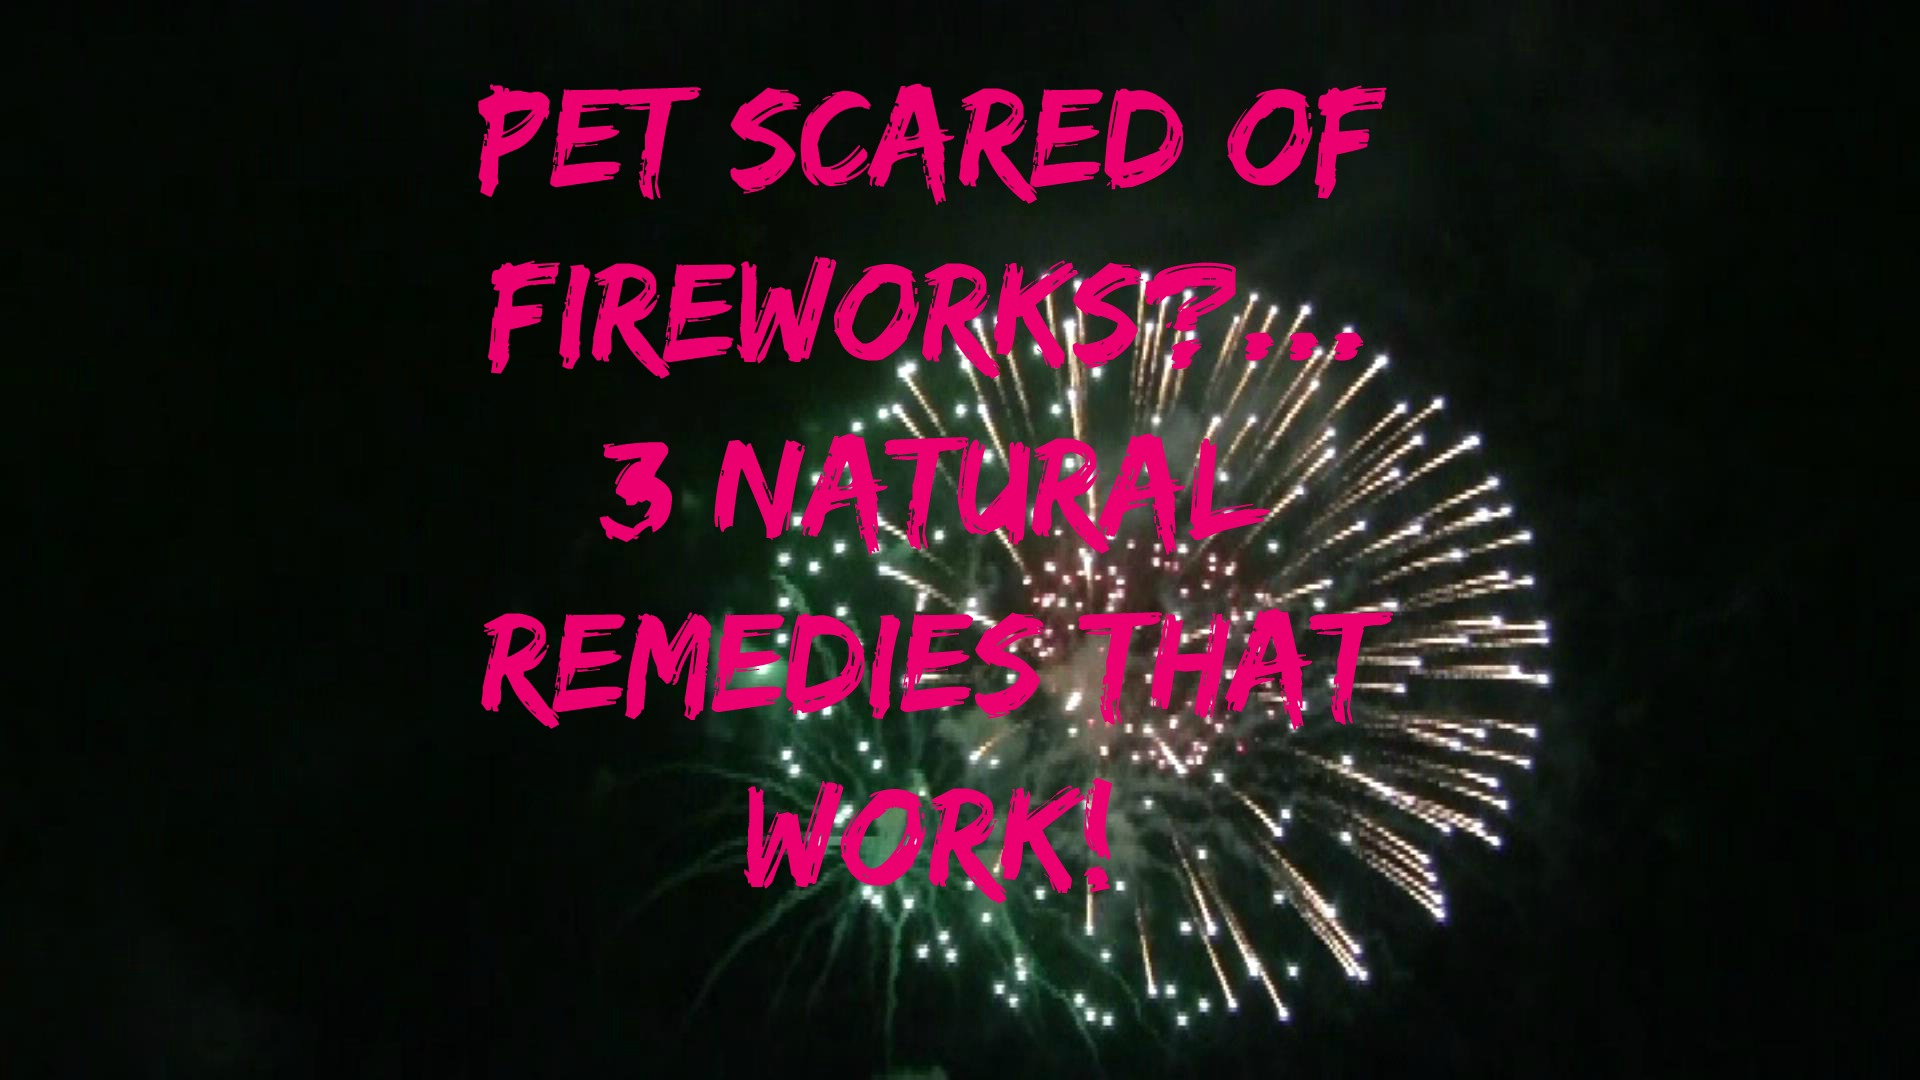 How To Get Dog To Stop Barking At Fireworks